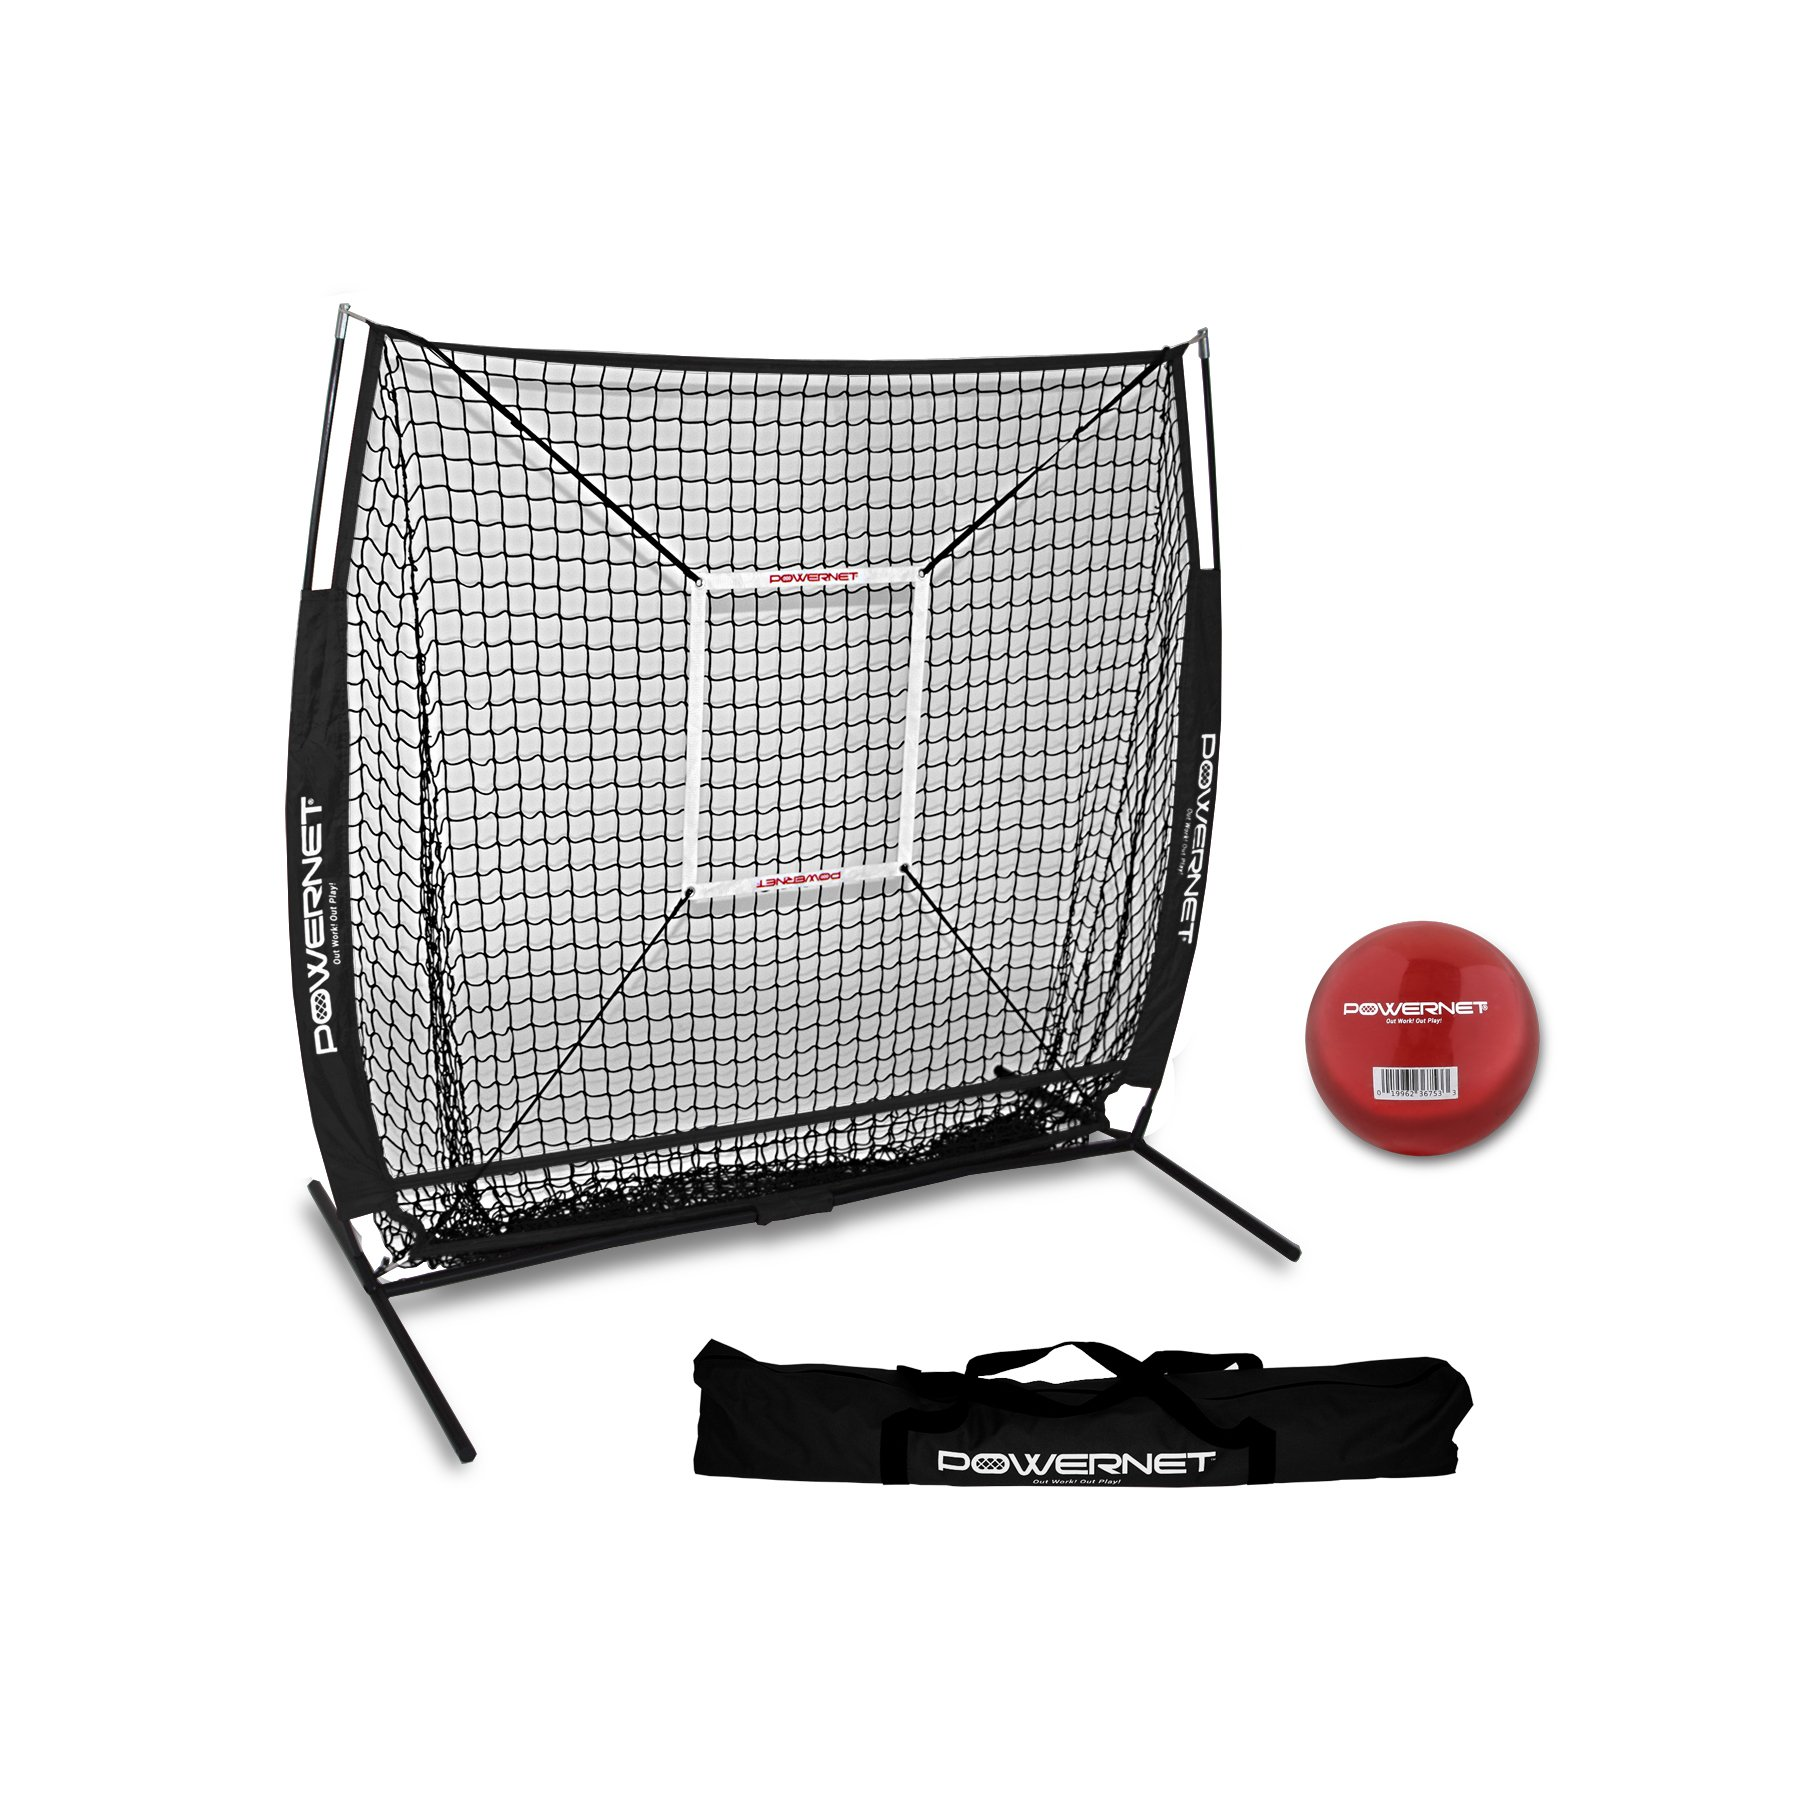 PowerNet 5x5 Practice Net + Strike Zone + Weighted Training Ball Bundle (Black) | Baseball Softball Coaching Aid | Compact Lightweight Ultra Portable | Team Color | Batting Screen by PowerNet